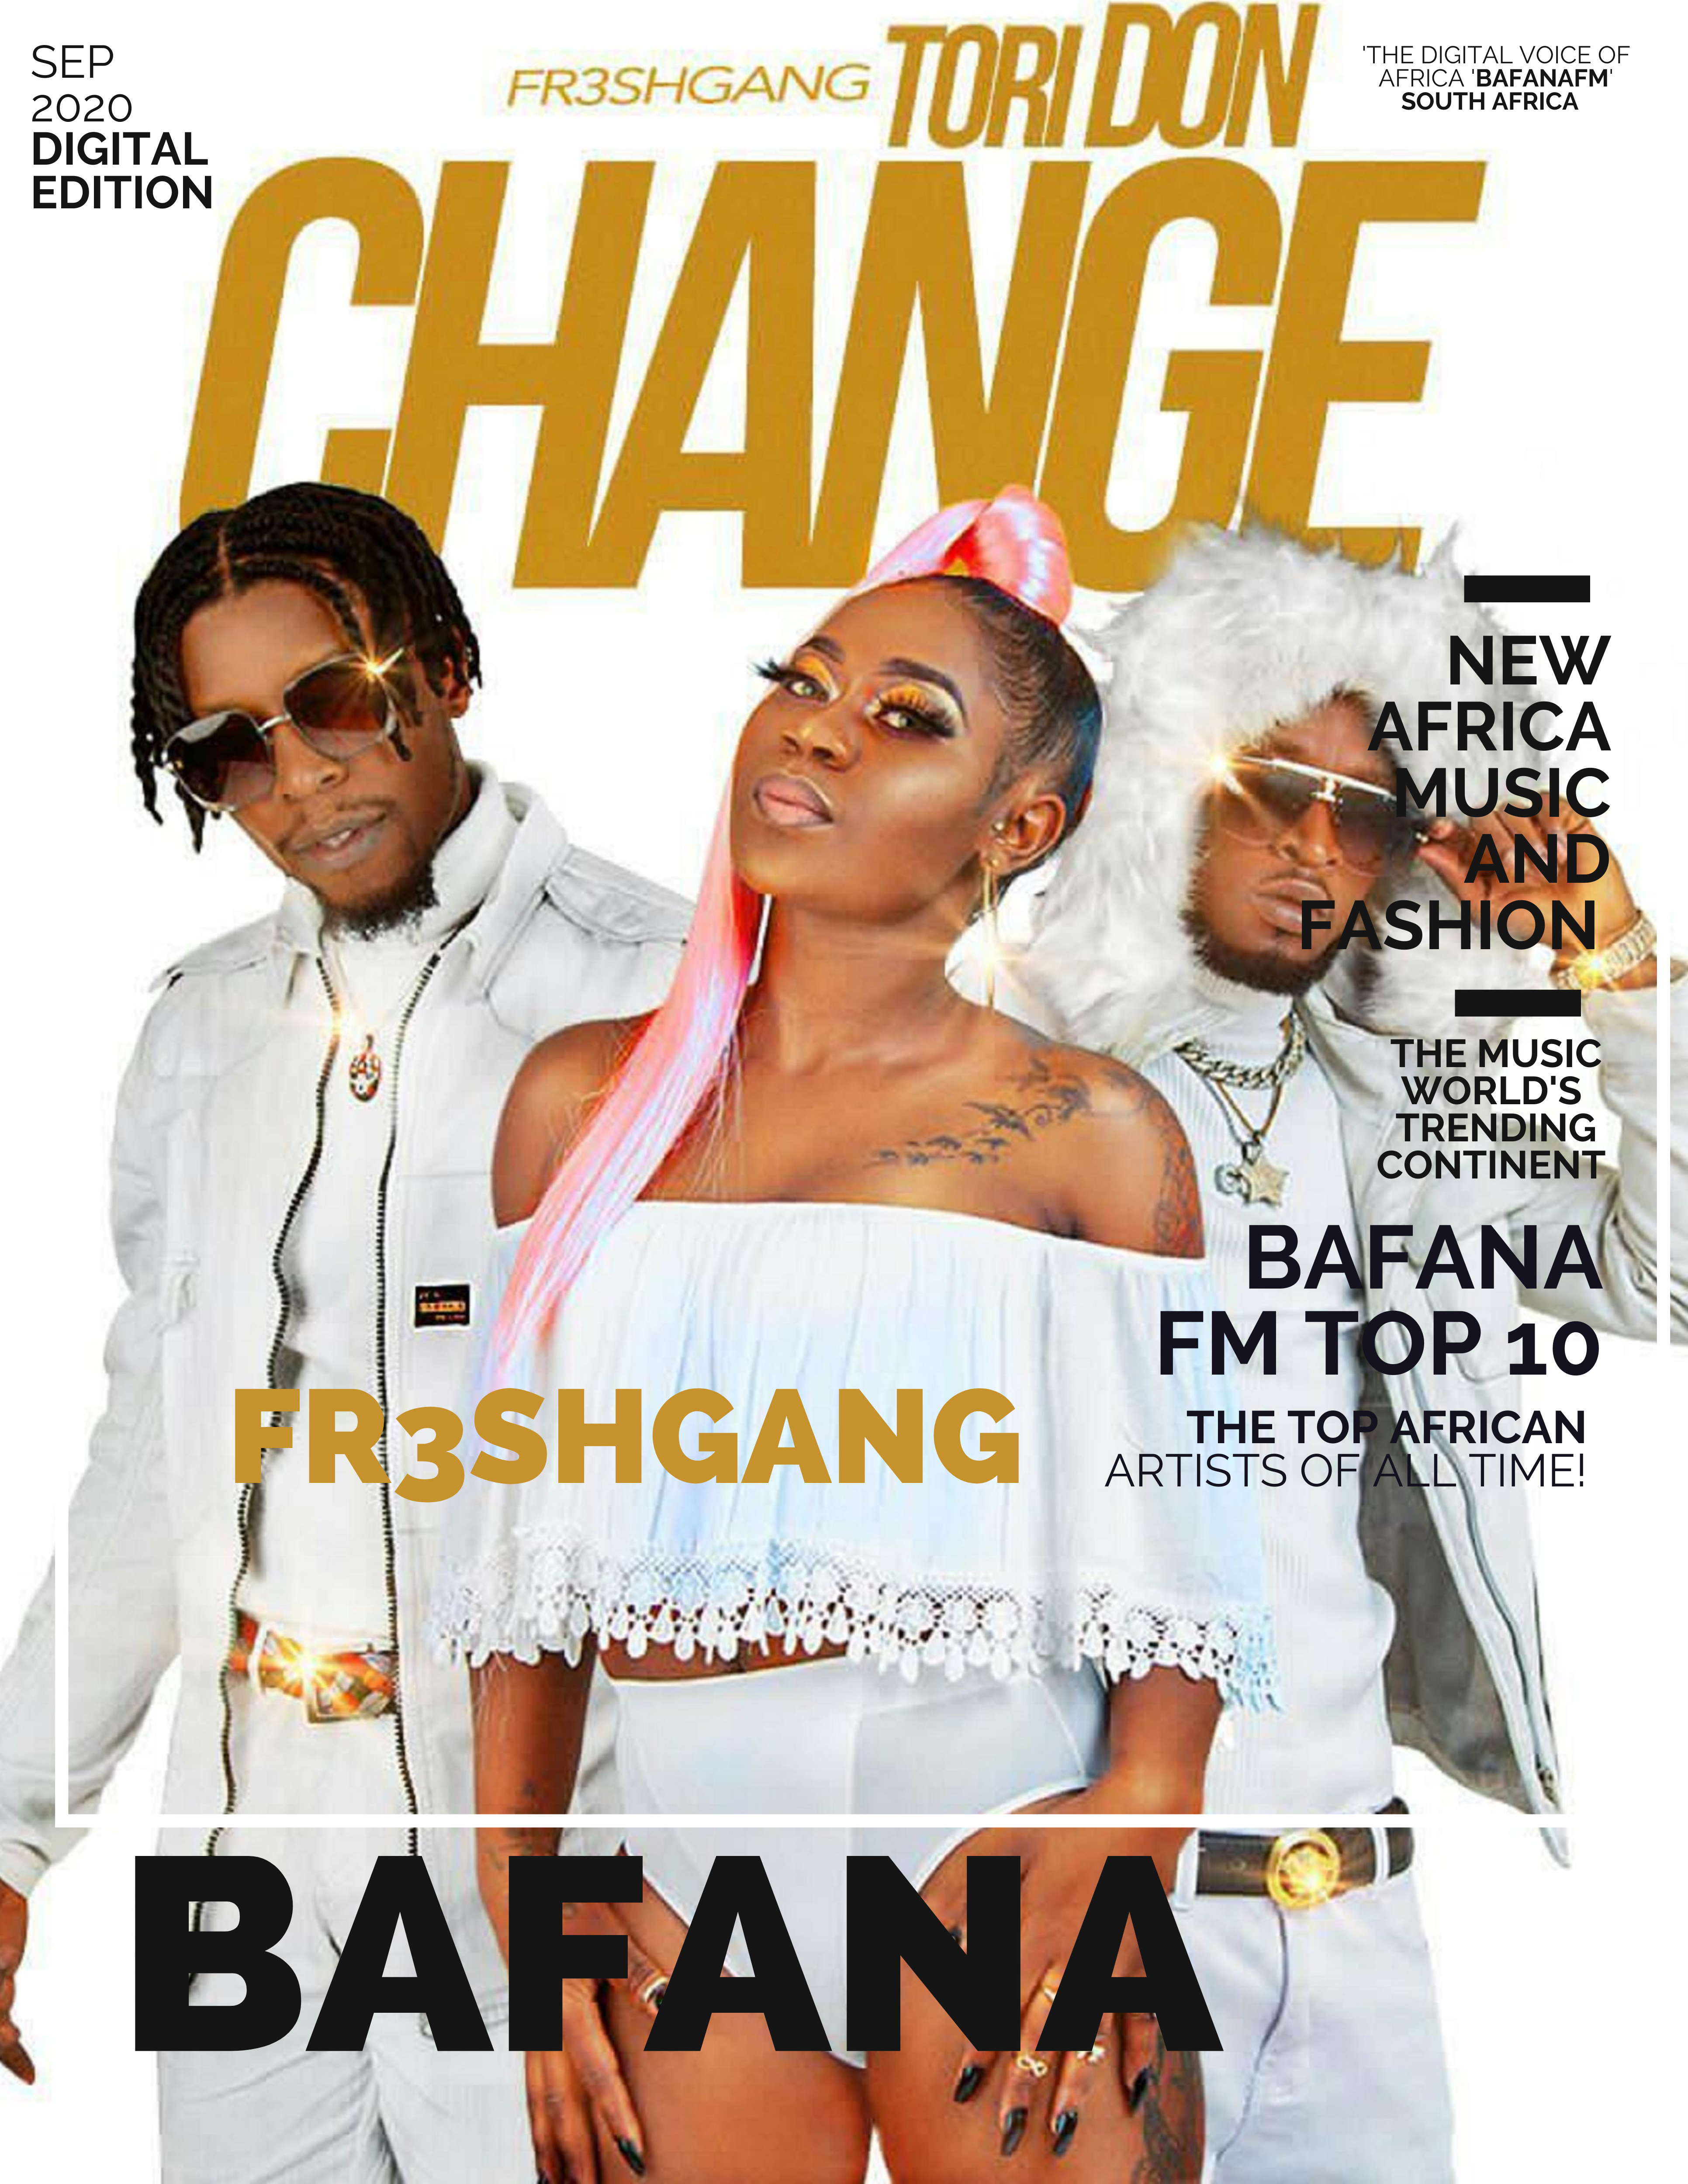 BAFANA FM BEST NEW AFRO-BEATS: Cameroon presents a world class Afro-Trap meets indigenous sexy Hip-Hop vibe on infectious single from 'FR3SHGANG' who unleash hot video 'Tori Don Change' soon. – On The Playlist